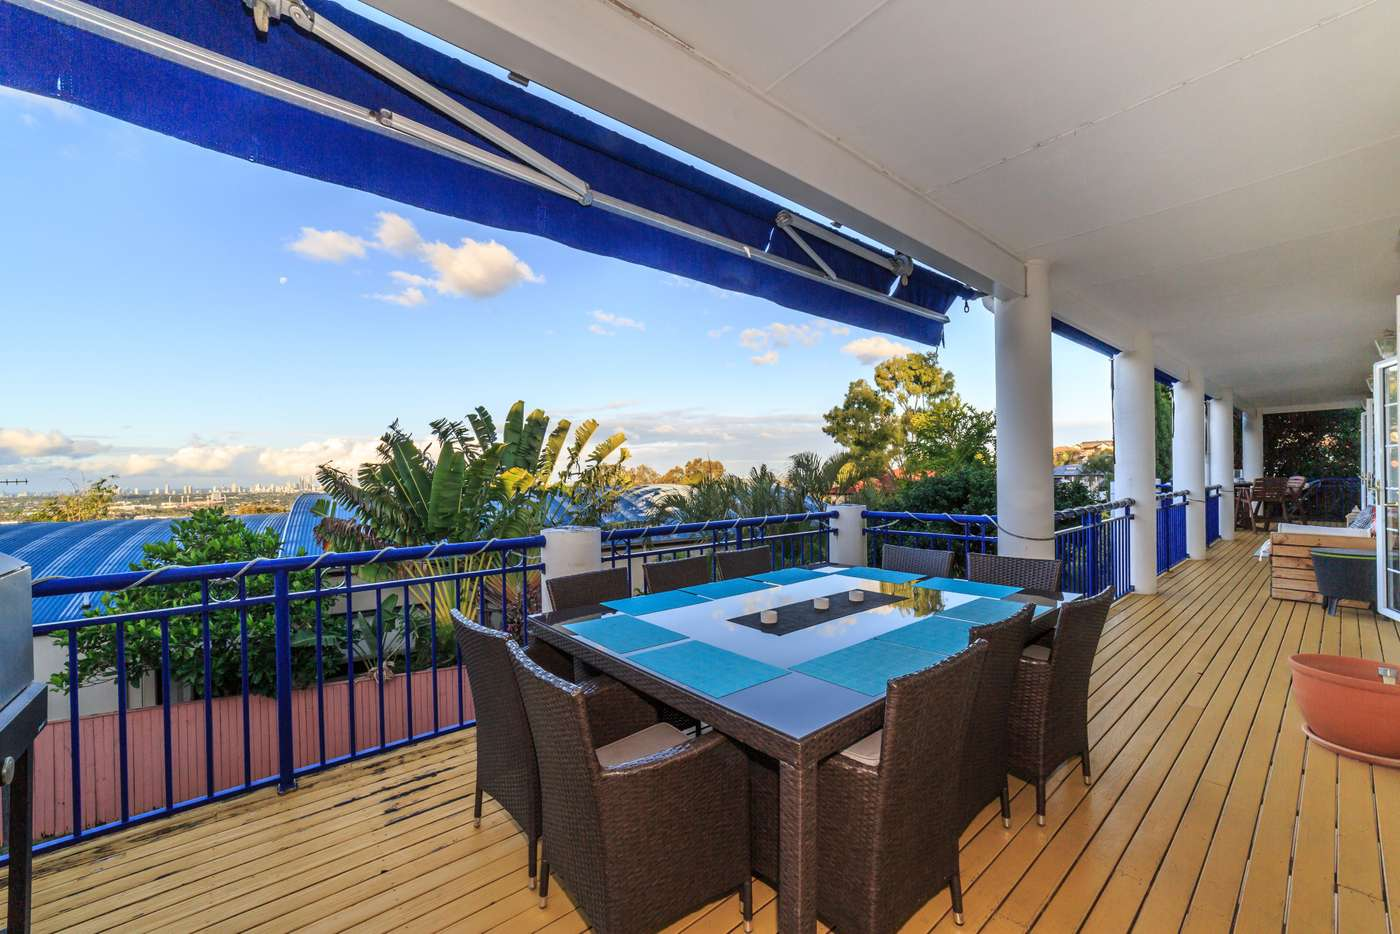 Main view of Homely house listing, 1 Galleria Court, Highland Park QLD 4211